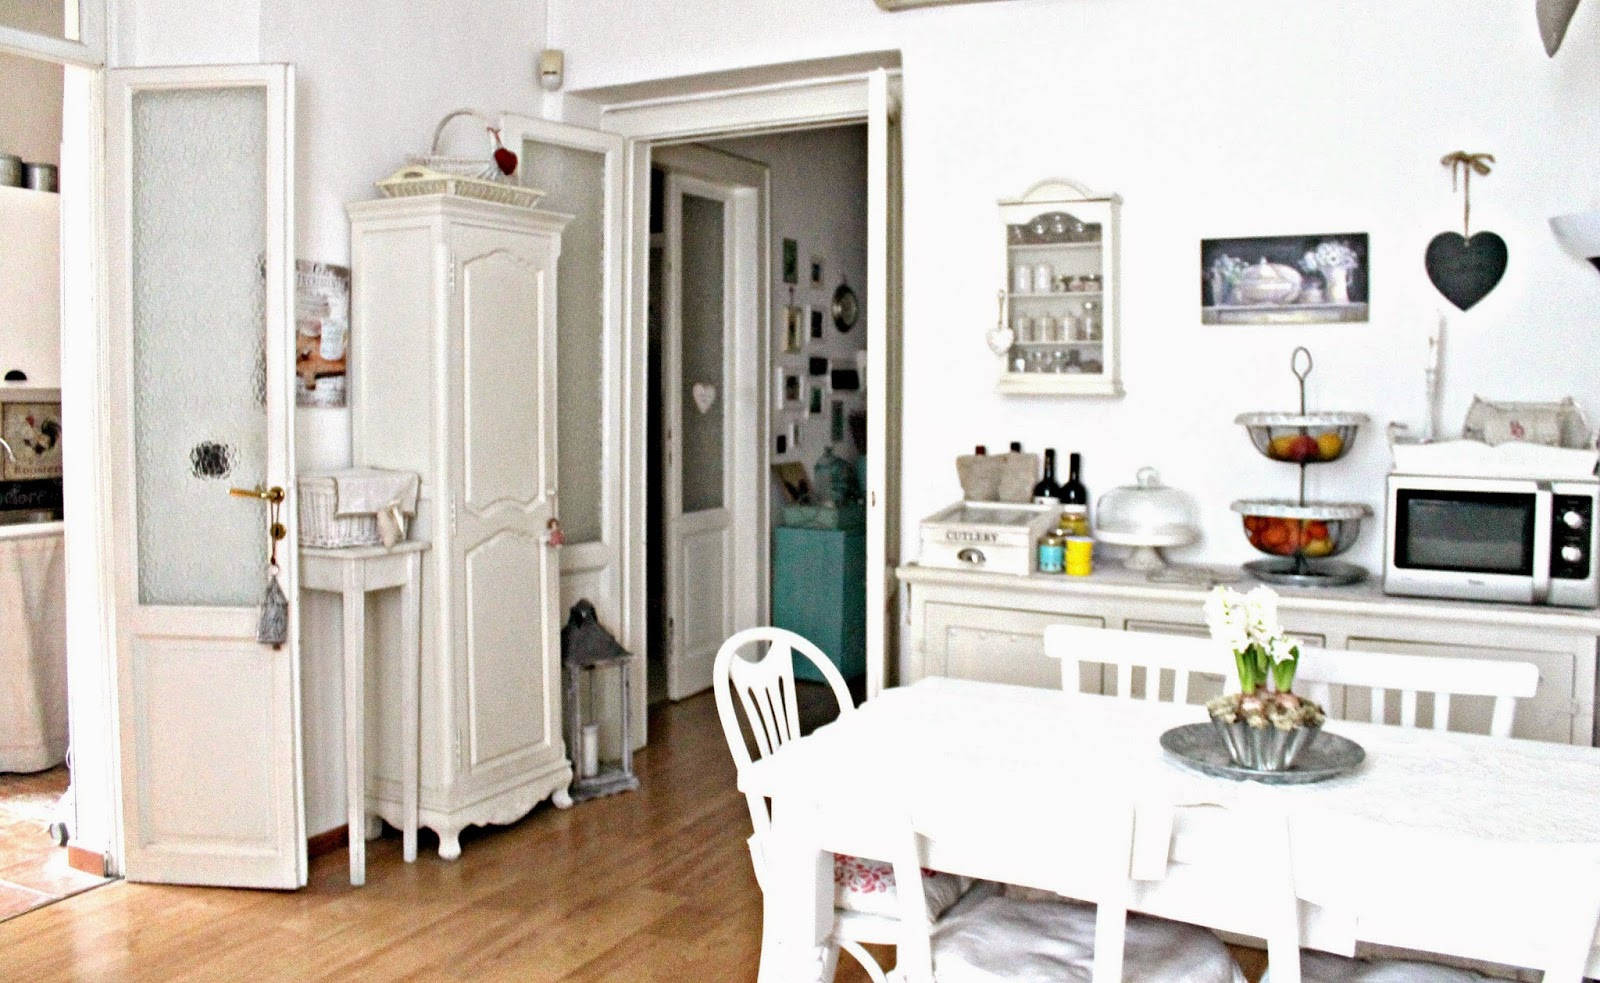 My little cozy home (Cilli Studio): La mia living room e la mia ...